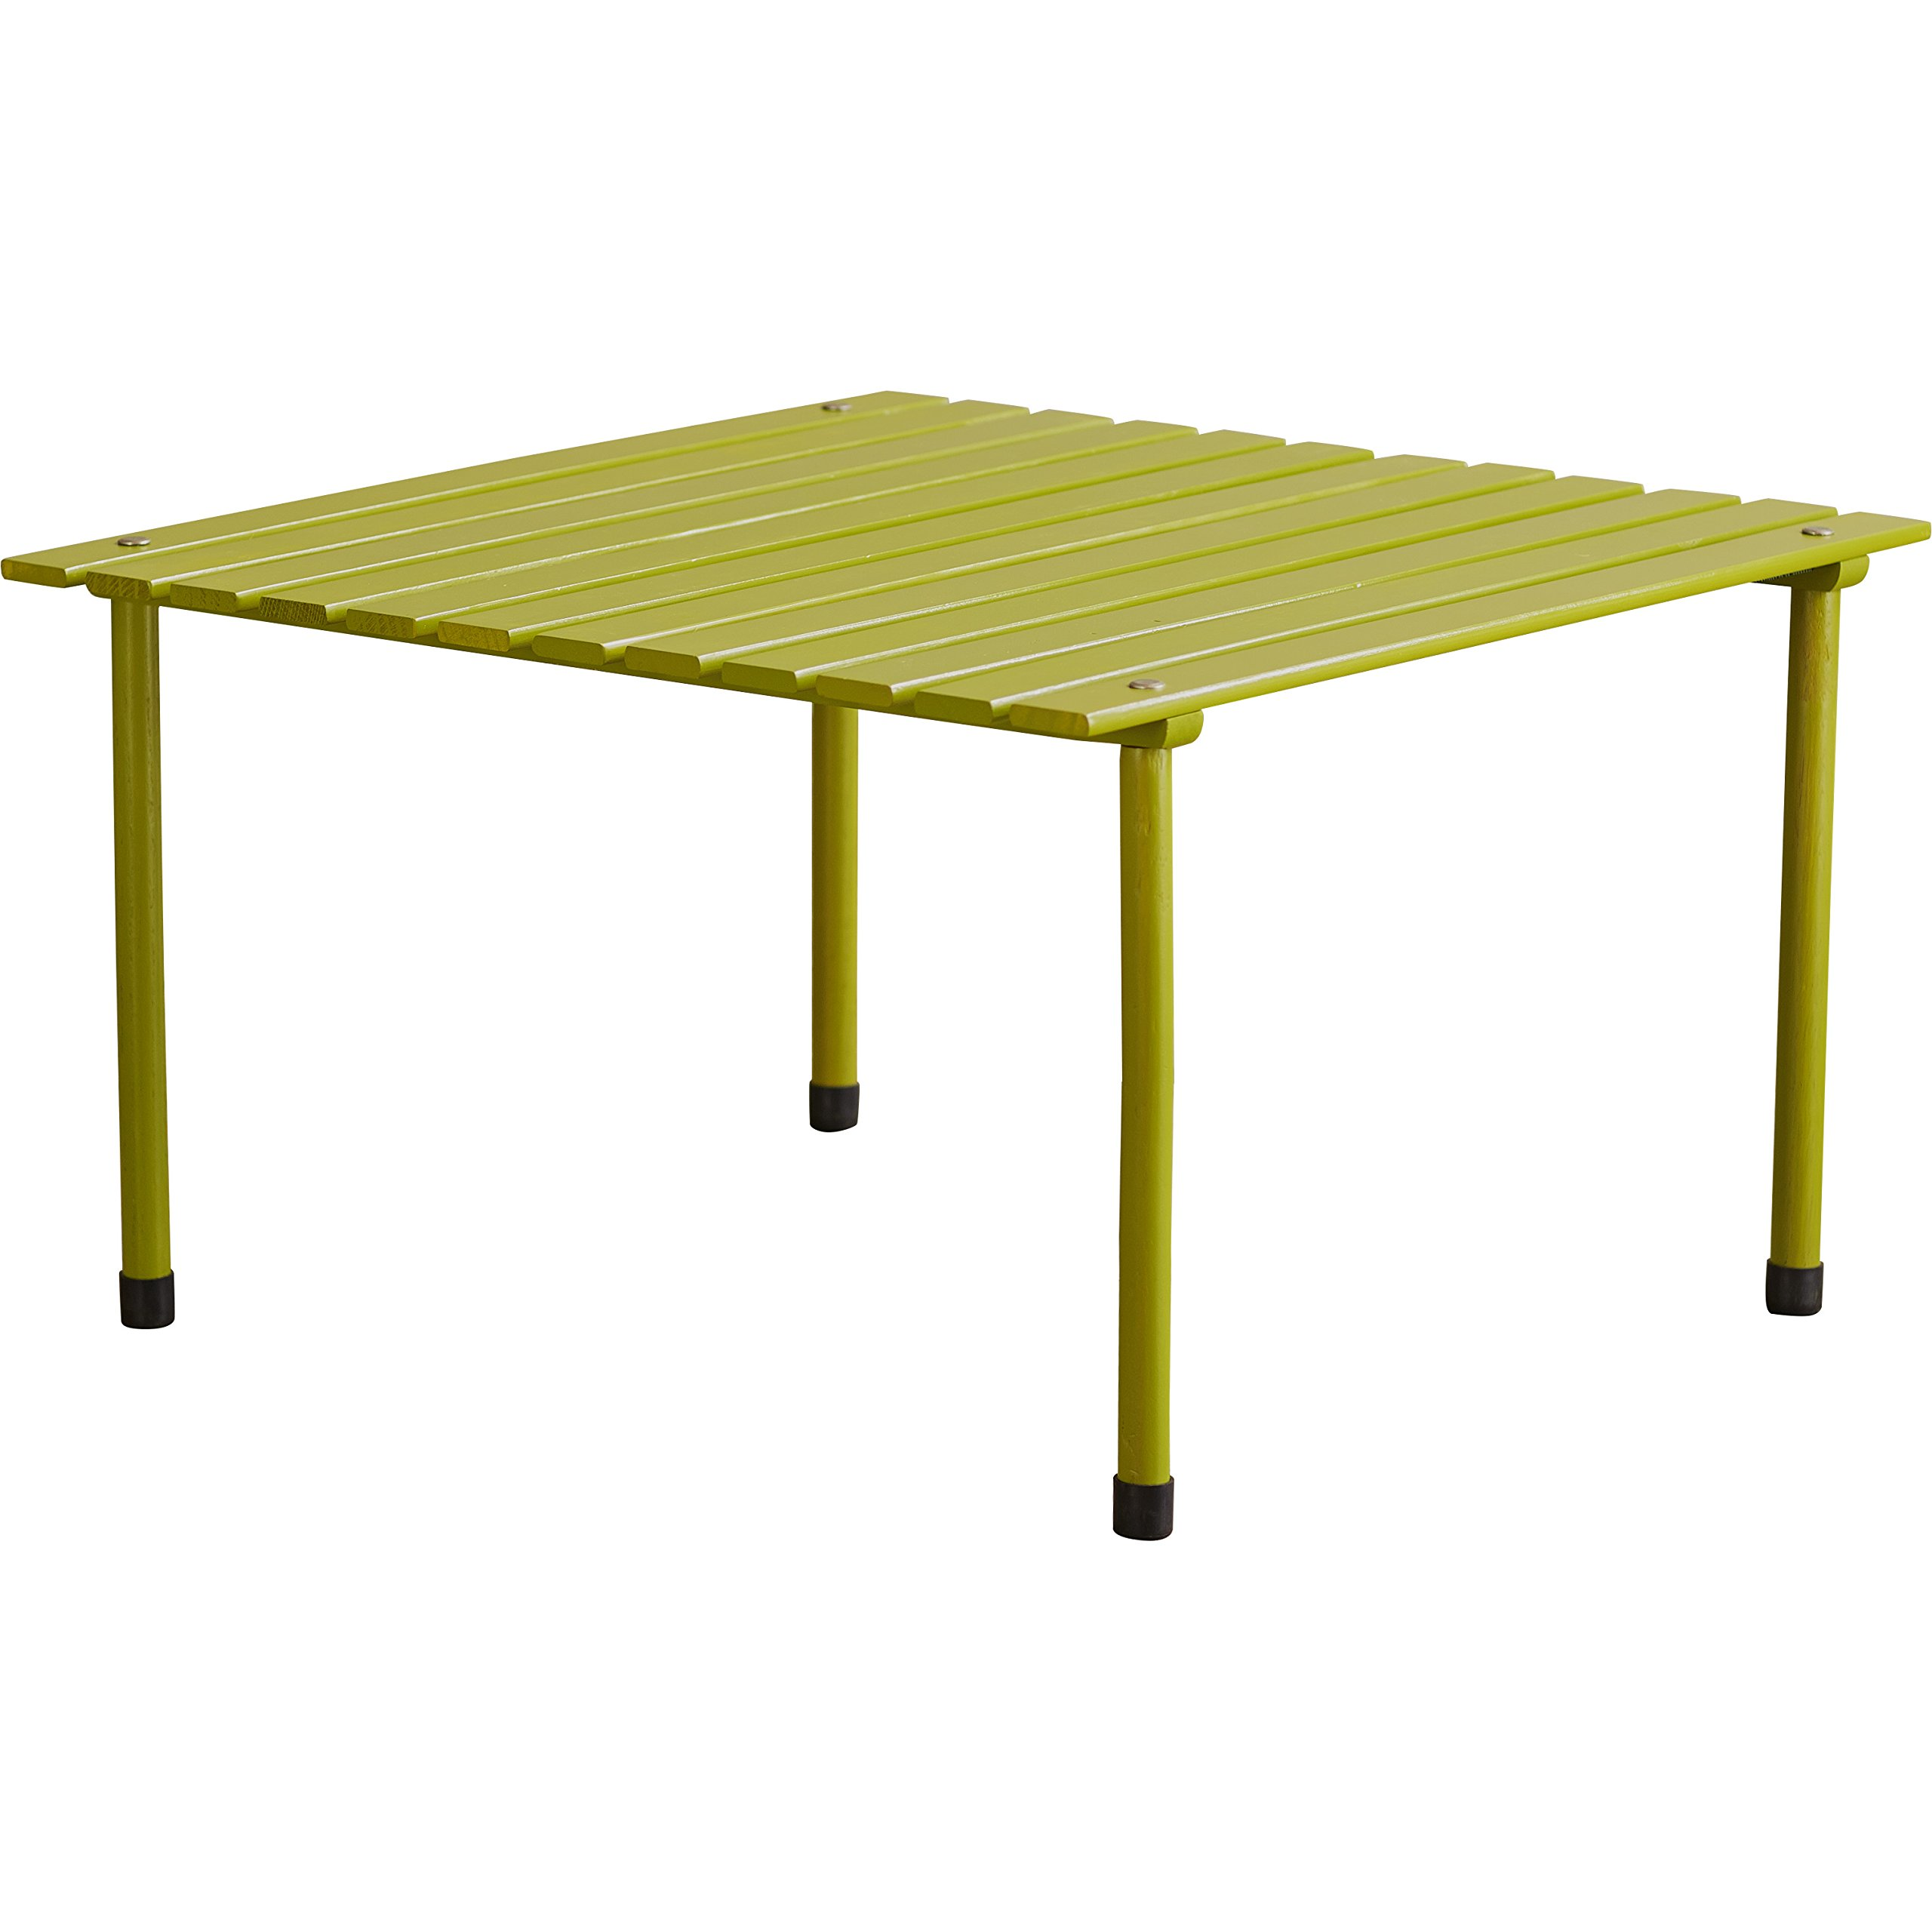 Transitional Style Jocelyn Millennium Lightweight Picnic Table with Carry Bag Made w/ Wood in Green Finish 16'' H x 27'' L x 27'' W in.